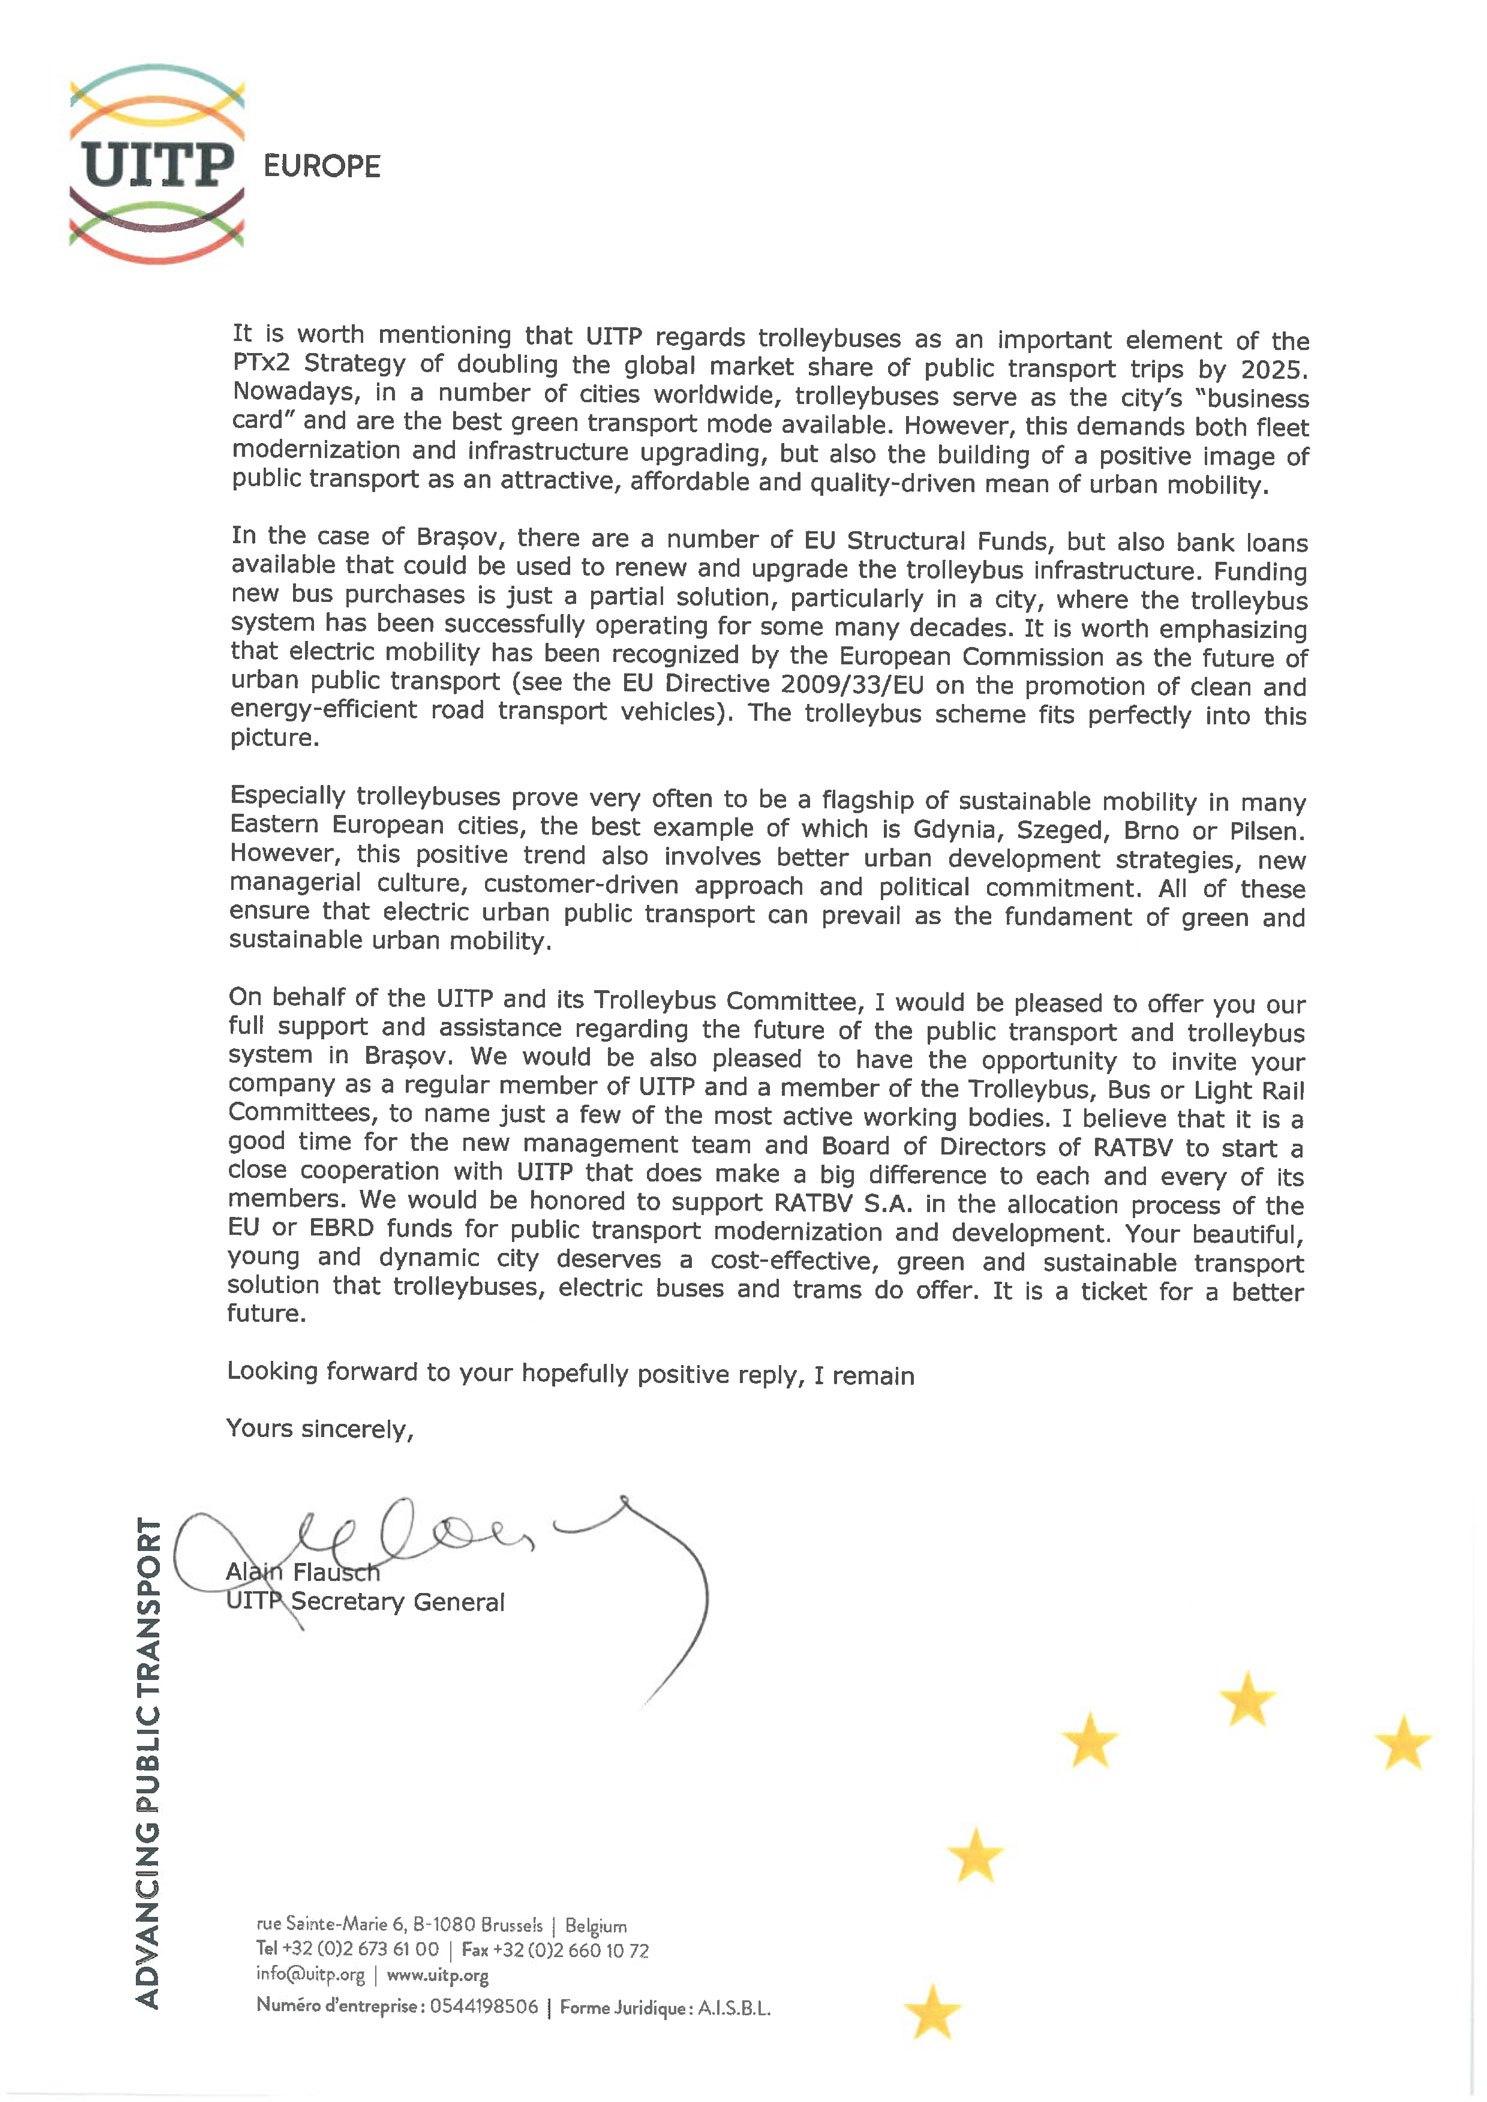 letter-from-UITP-Secretary-General-2